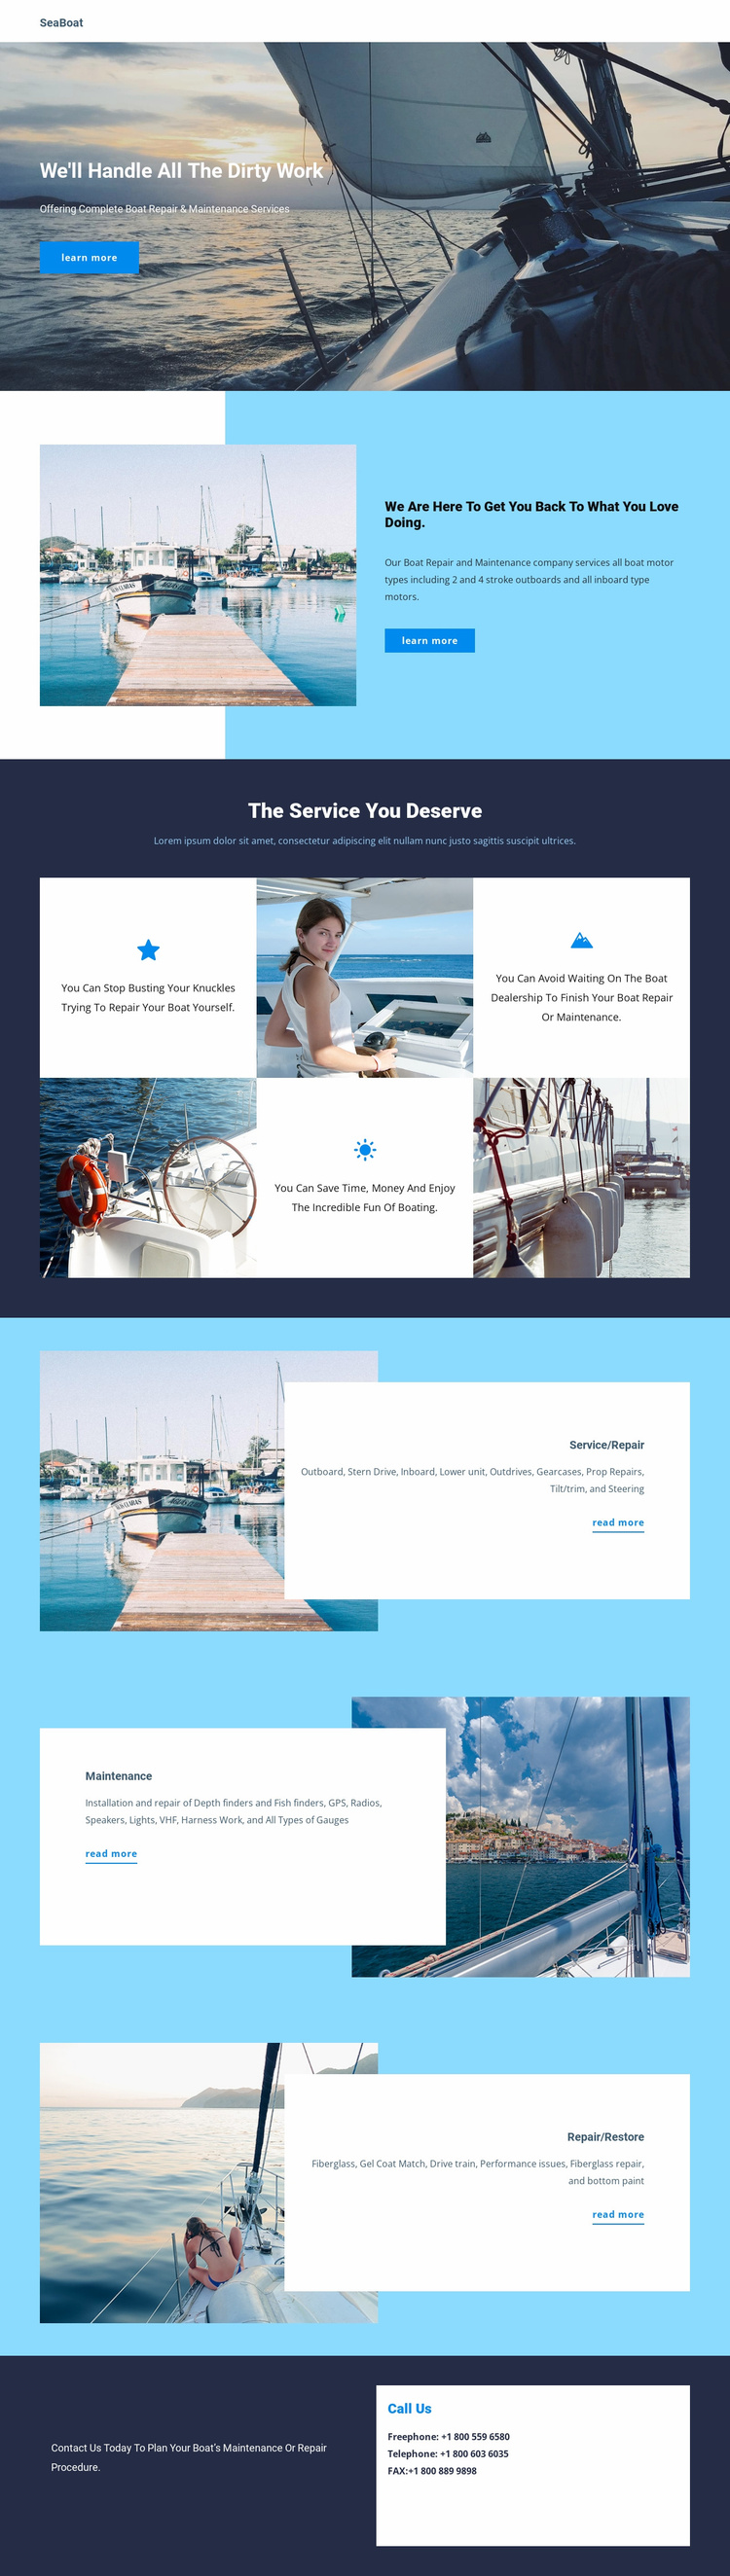 Travel on Seaboat Website Template